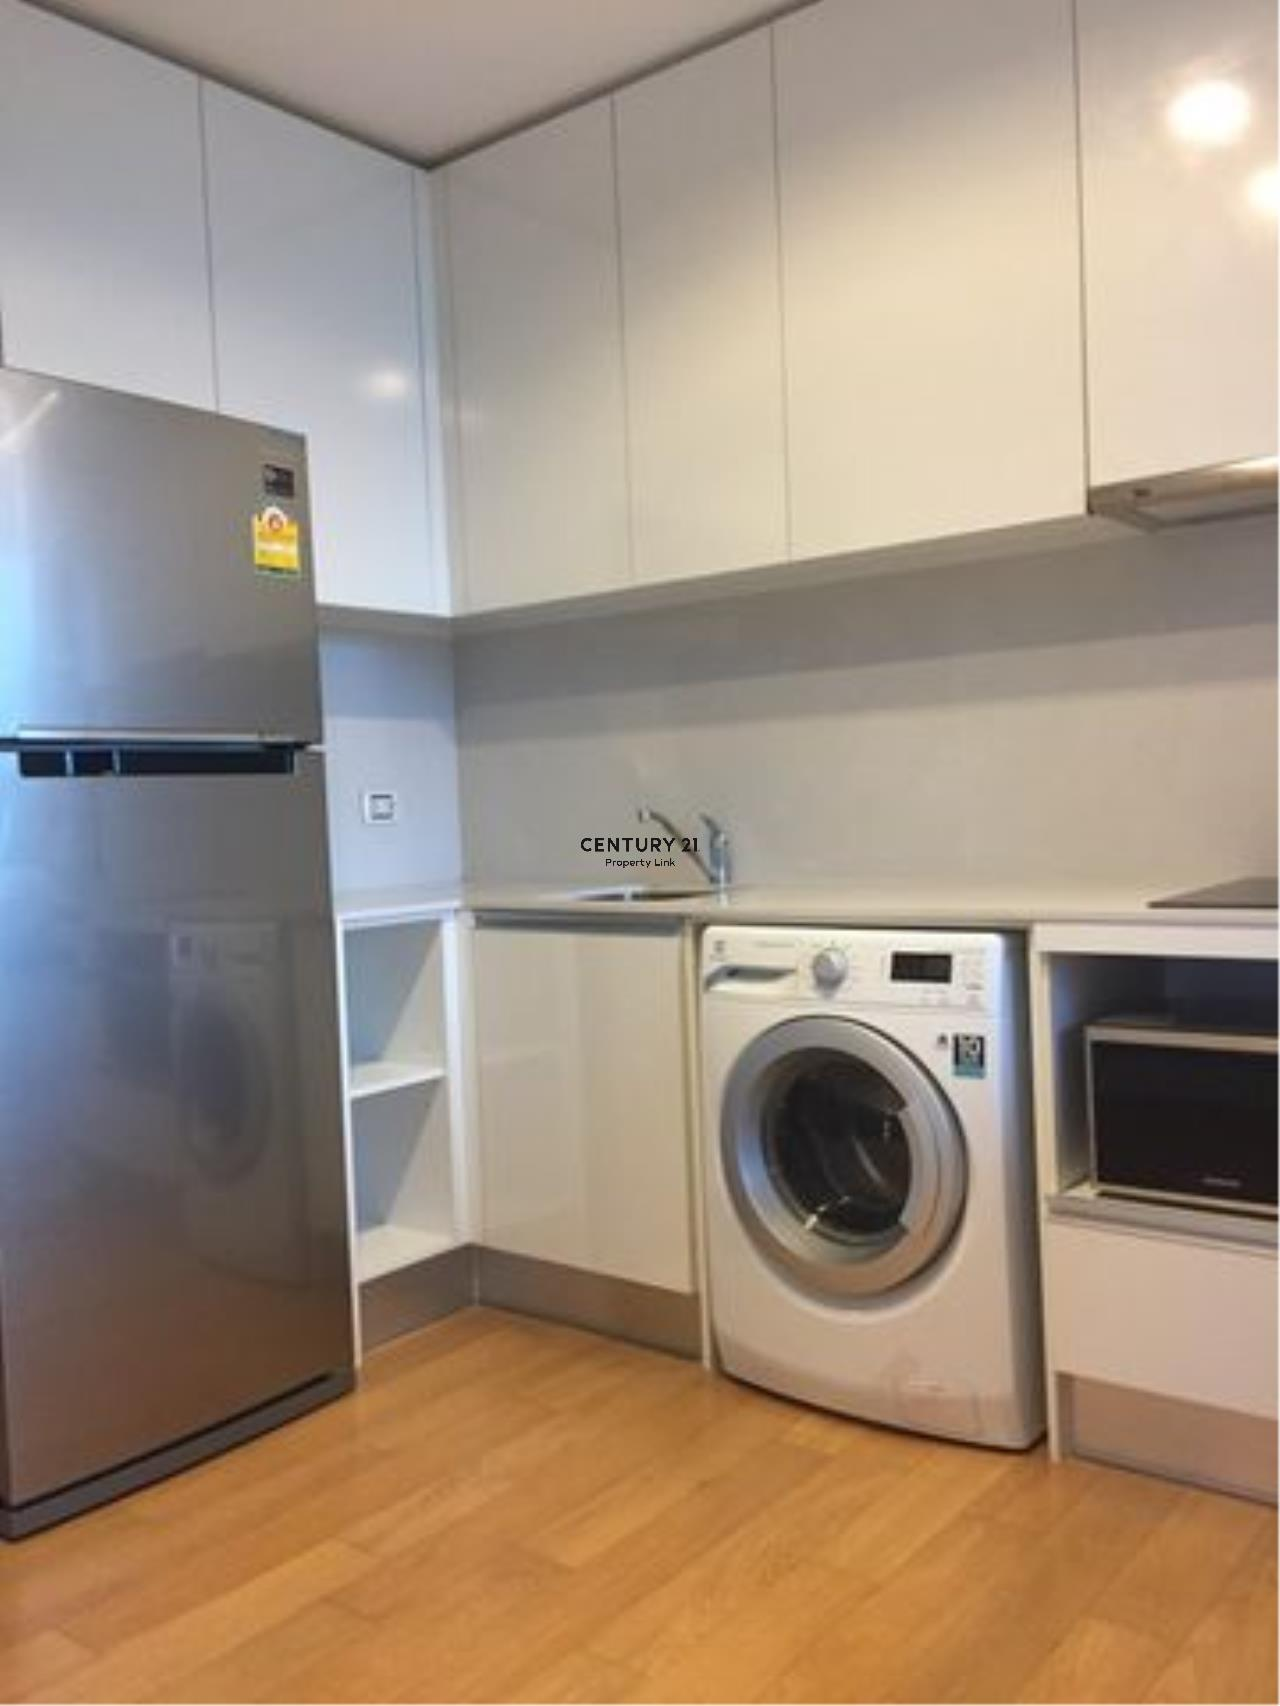 Century21 Property Link Agency's 39-CC-61448 Equinox Phahol-Vibha HIGH CLASS Room For Rent Near MRT @Chatuchak Park BTS @ Mo Chit Phahonyothin Road 2 Bedroom Rental 40,000 THB./ month  12